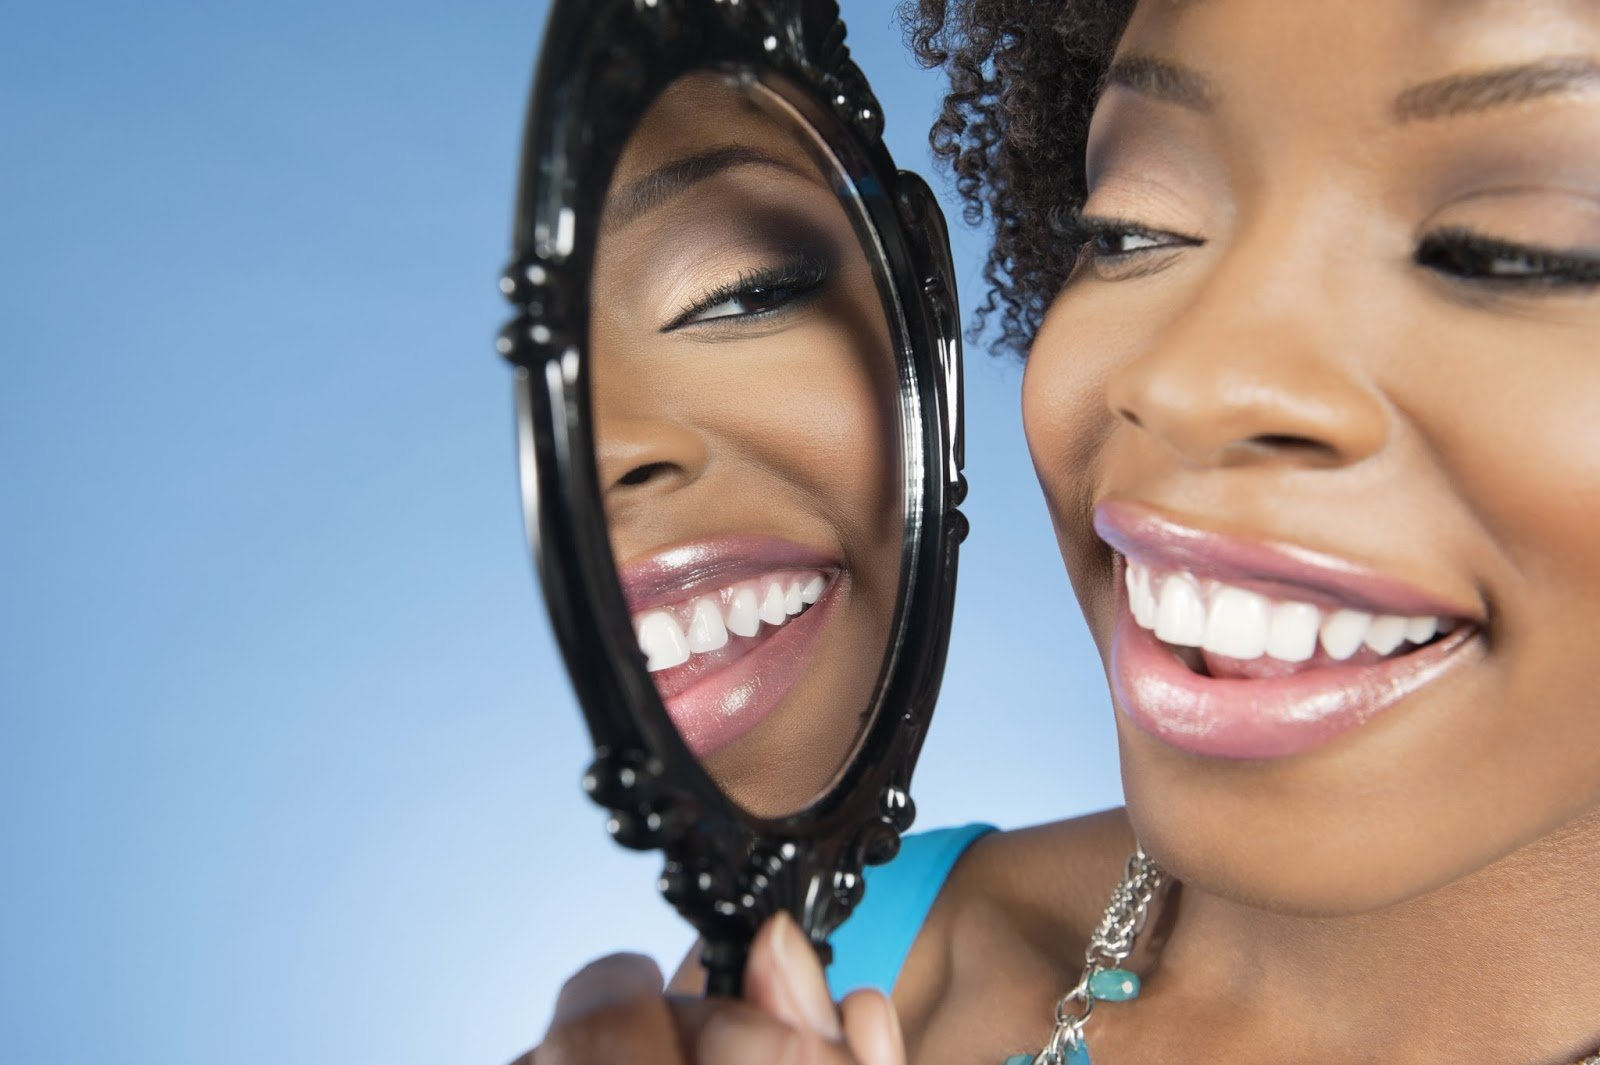 10 Signs You're So Vain